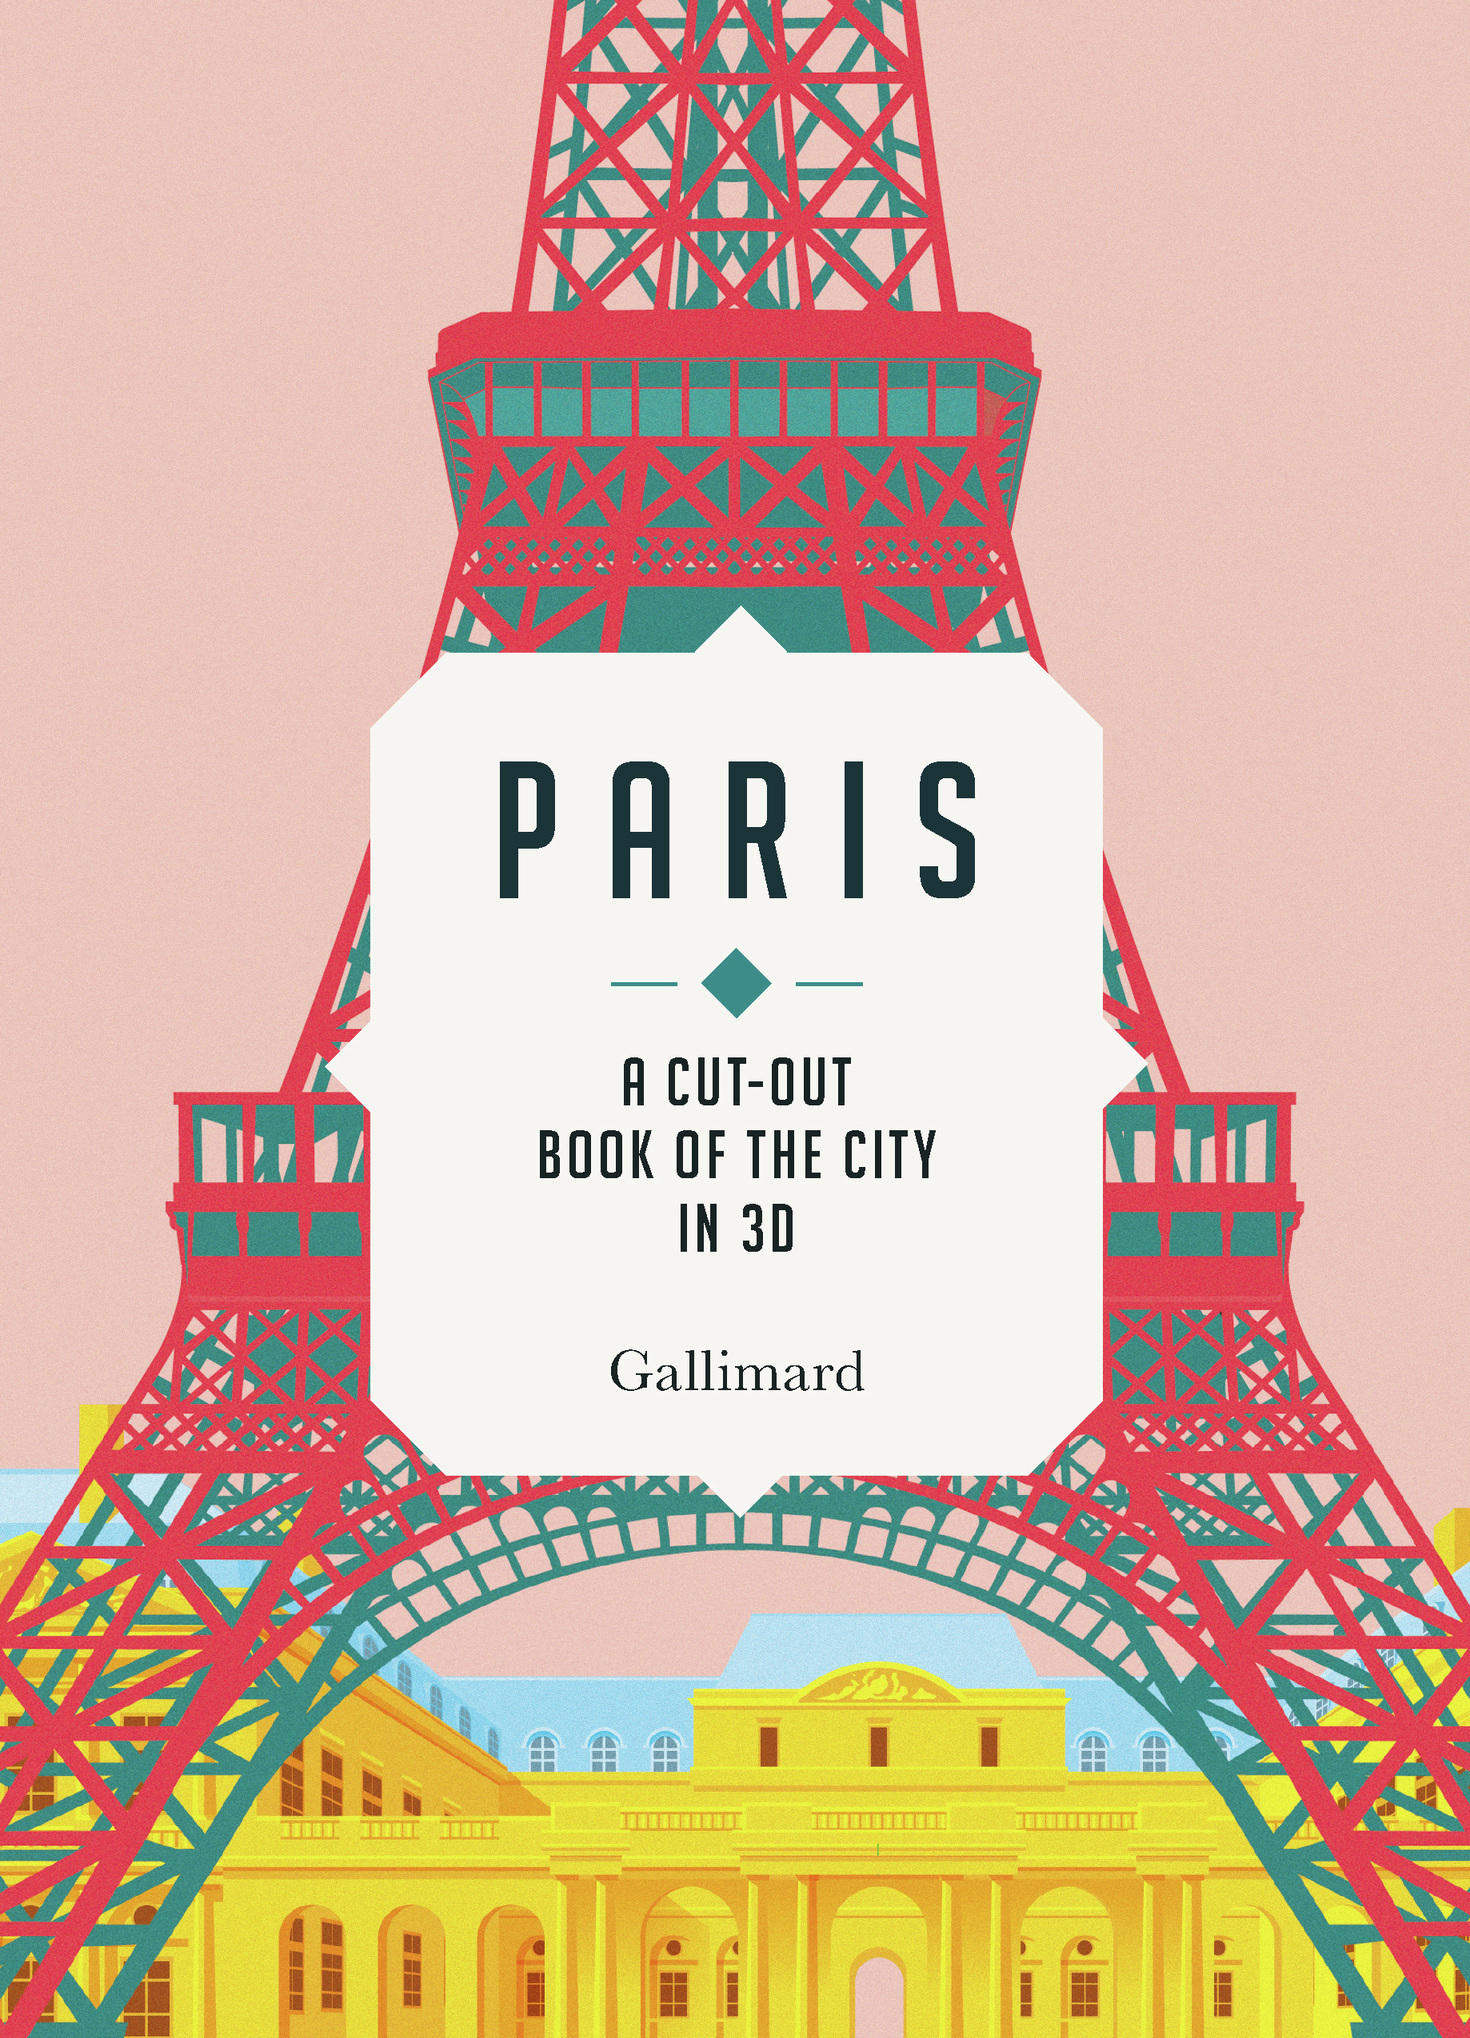 PARIS - A CUT-OUT BOOK OF THE CITY IN 3D